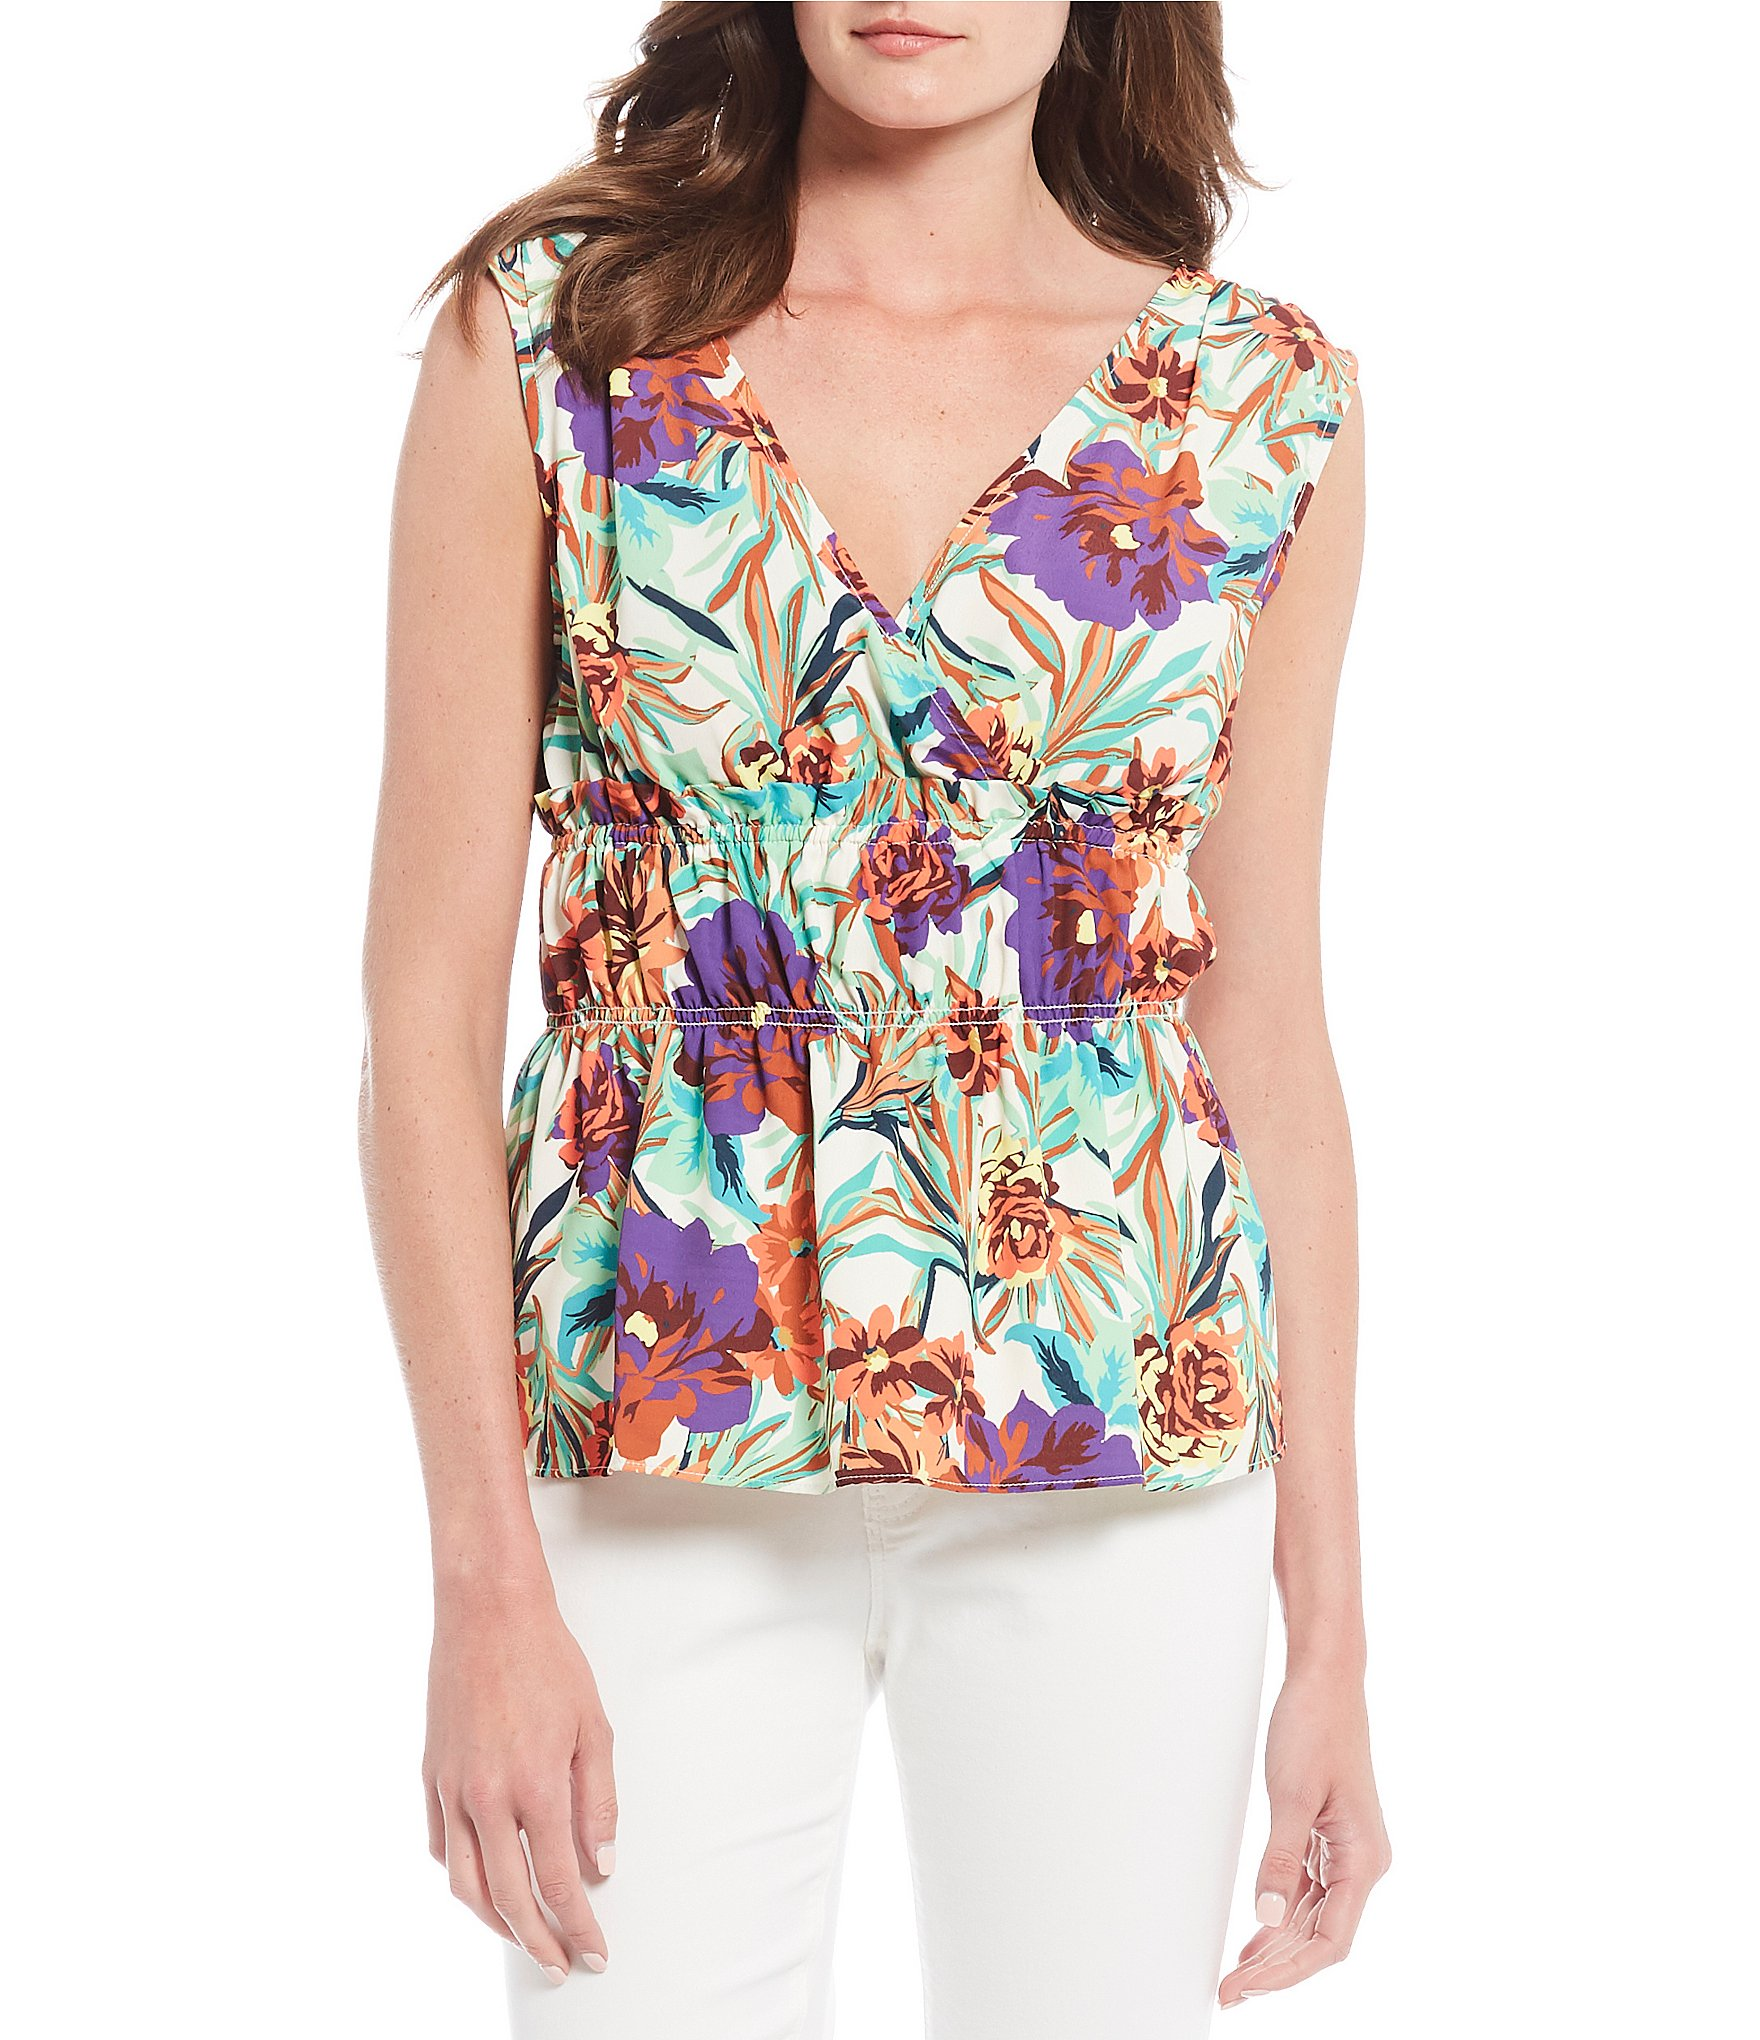 9708a464bfaaed Gibson and Latimer Women's Clothing | Dillard's